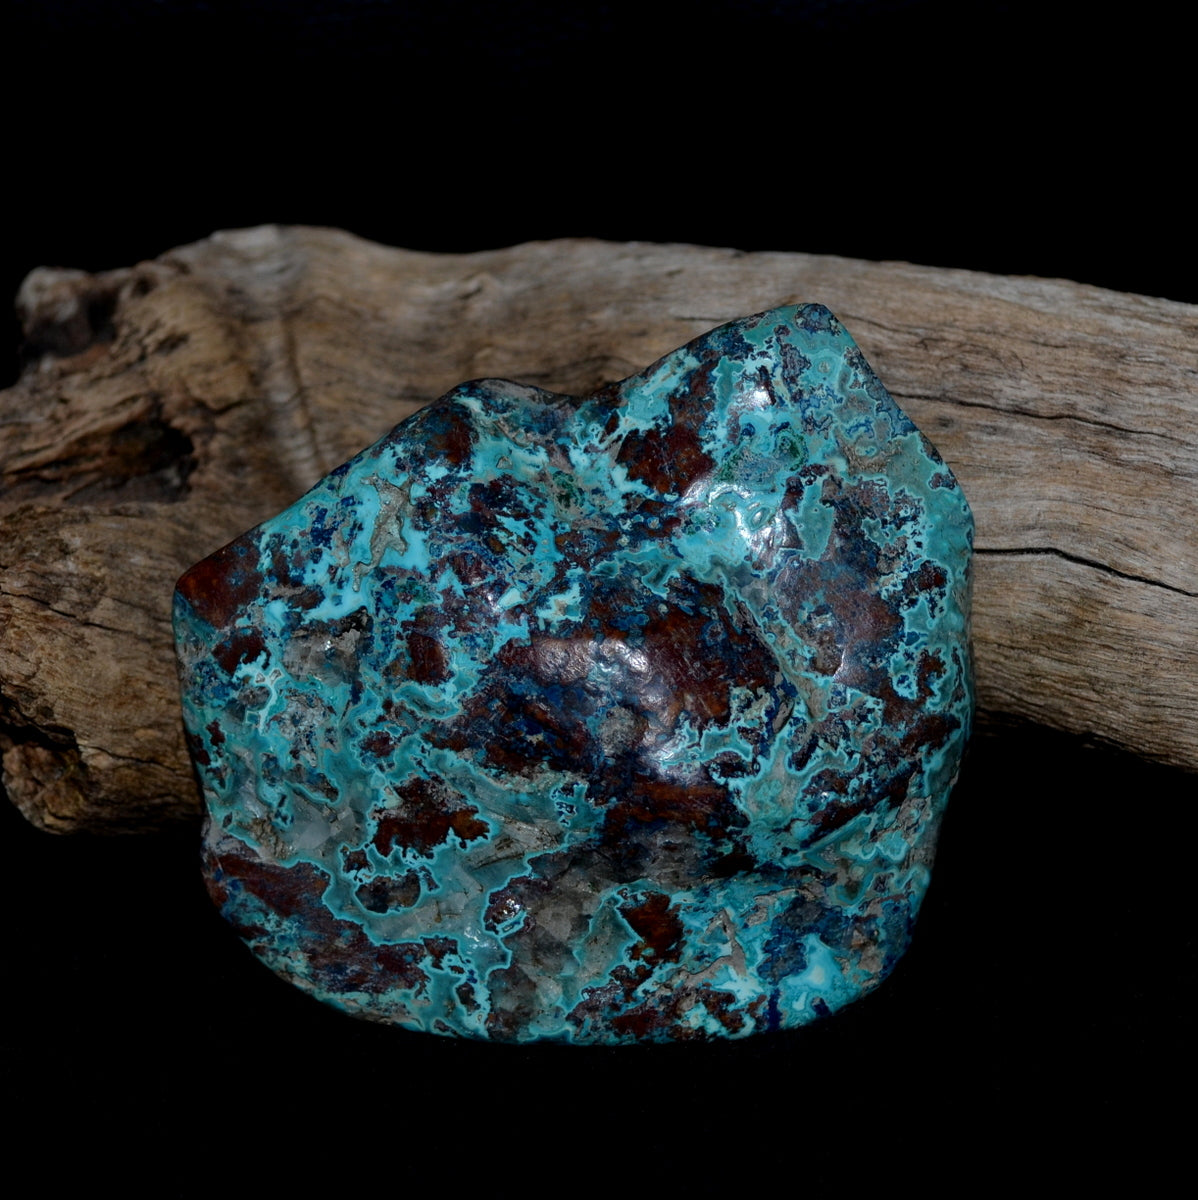 Shattuckite Polished Freeform Congo at Illiom Crystals - Afterpay Available